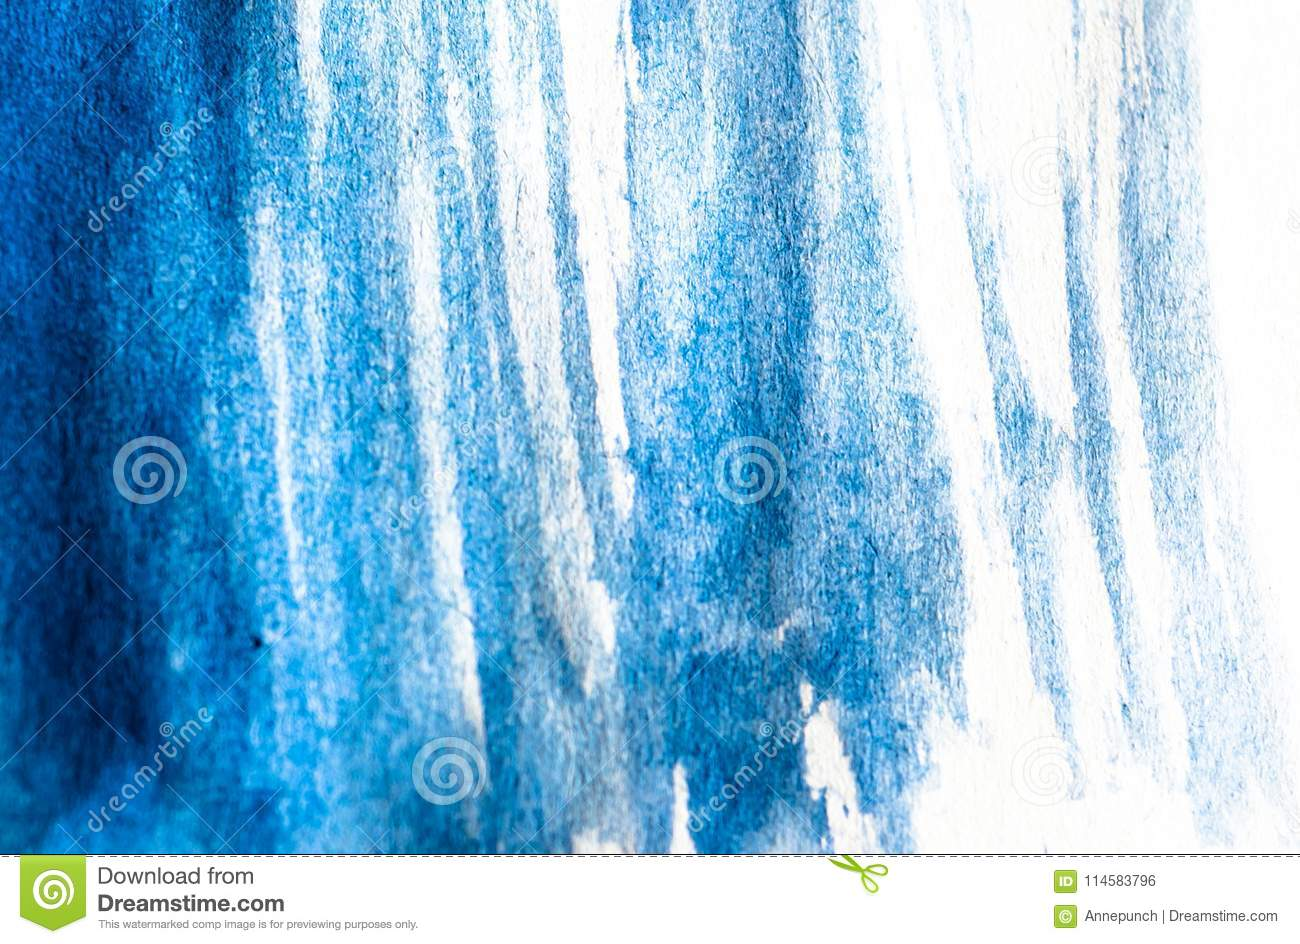 Texture of blue watercolor paint on white paper. Horizontal background with stains of watercolour brush strokes.